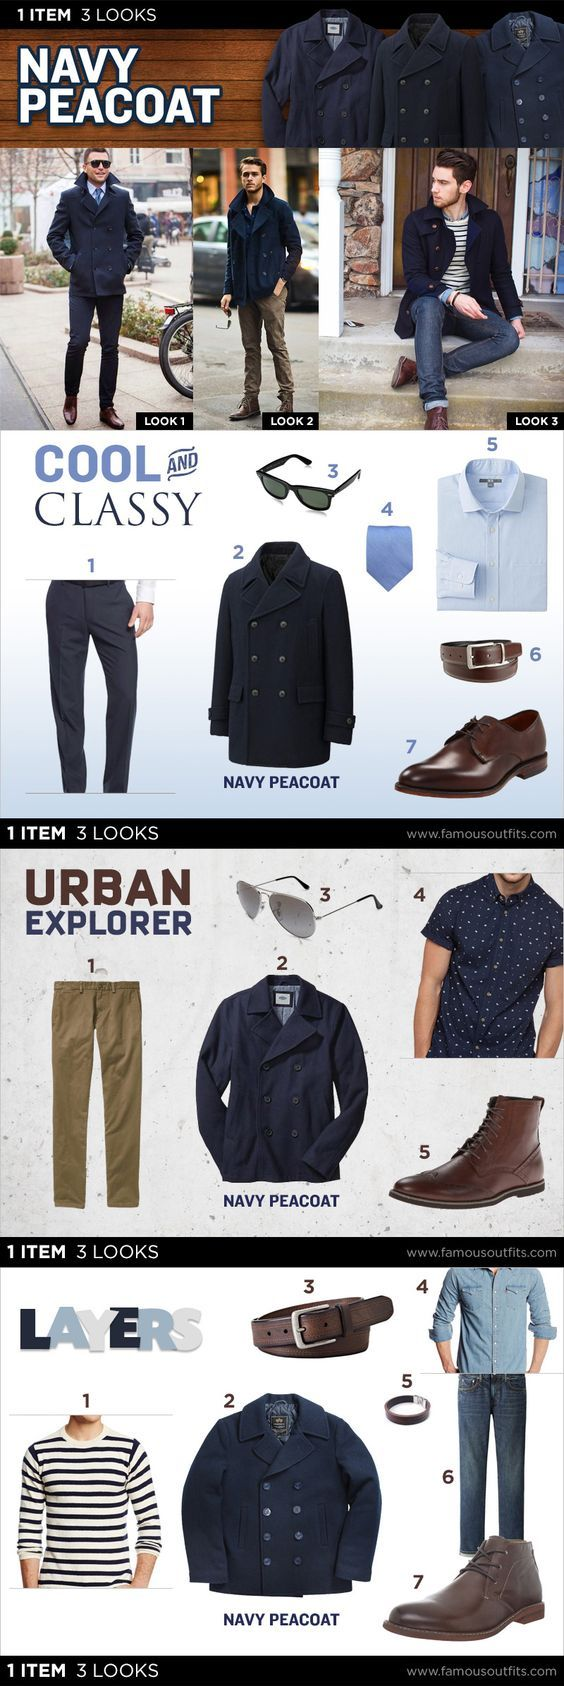 No matter if you have a Peacoat in your closet already, or are considering one as the winter season draws -- check out some great getups from Famous Outfits that take 1 item, but give you 3 looks.